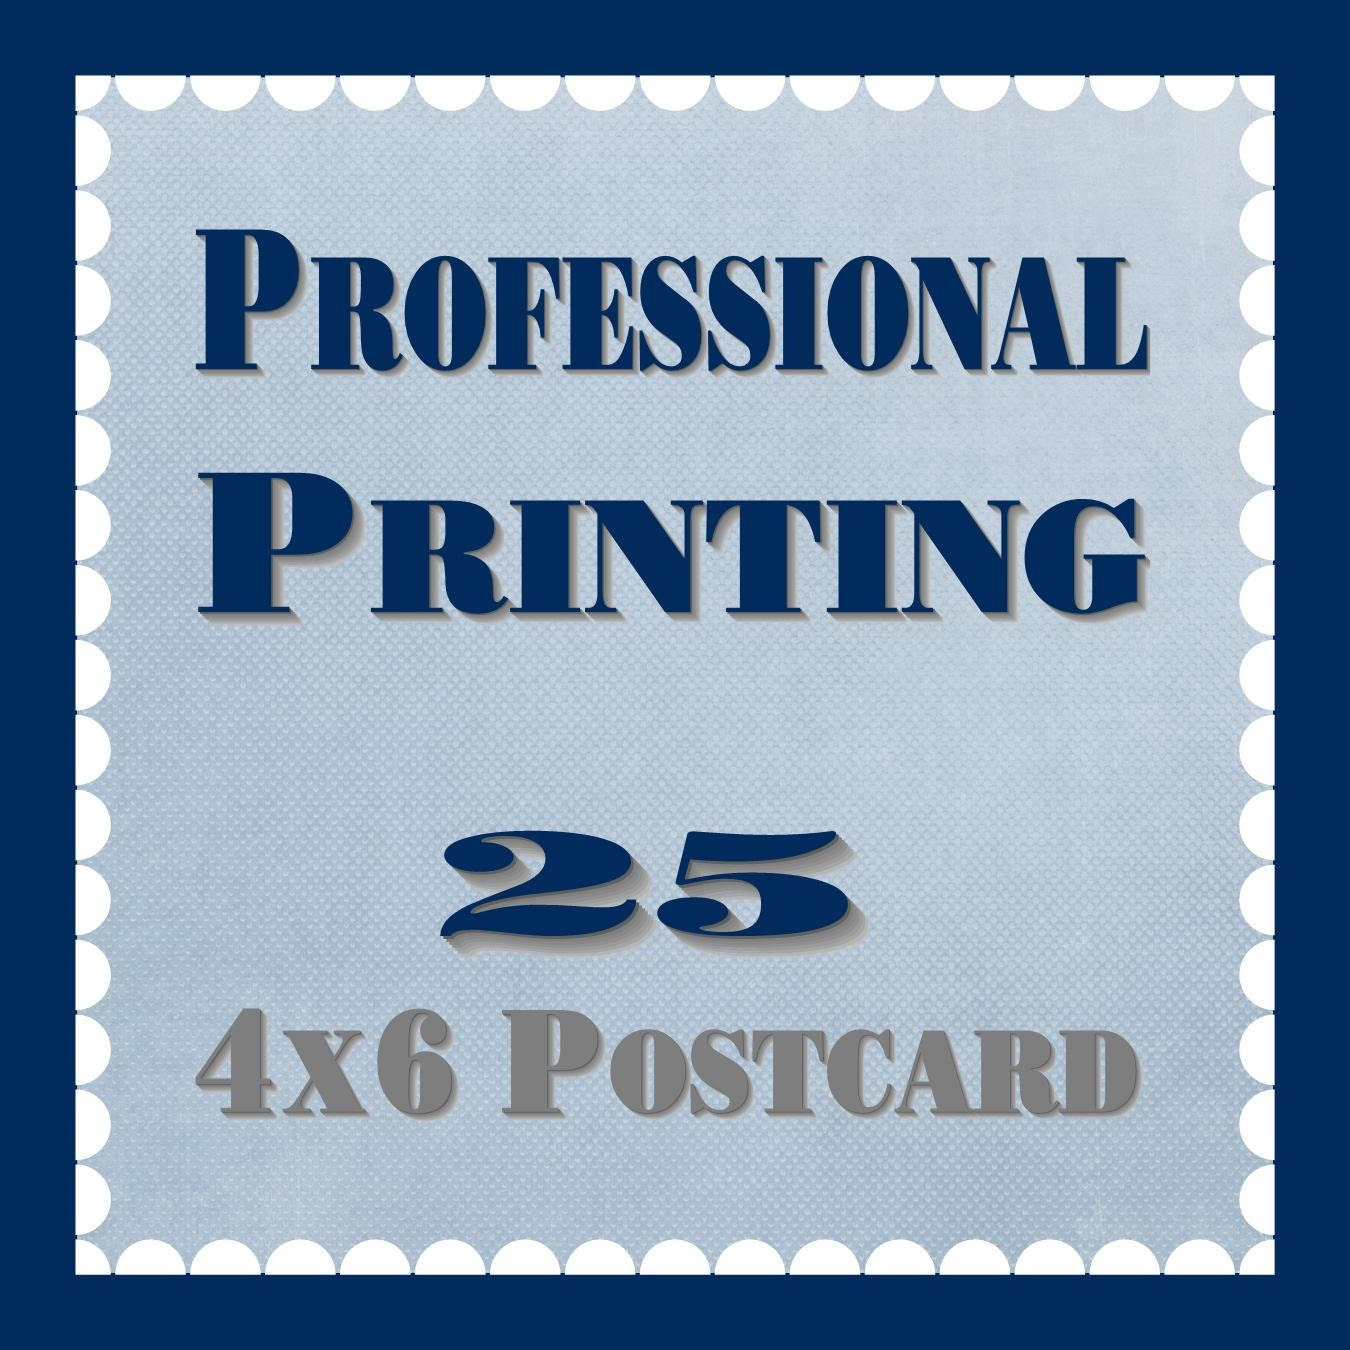 Items Similar To 4x6 Postcard  Professional Printing On